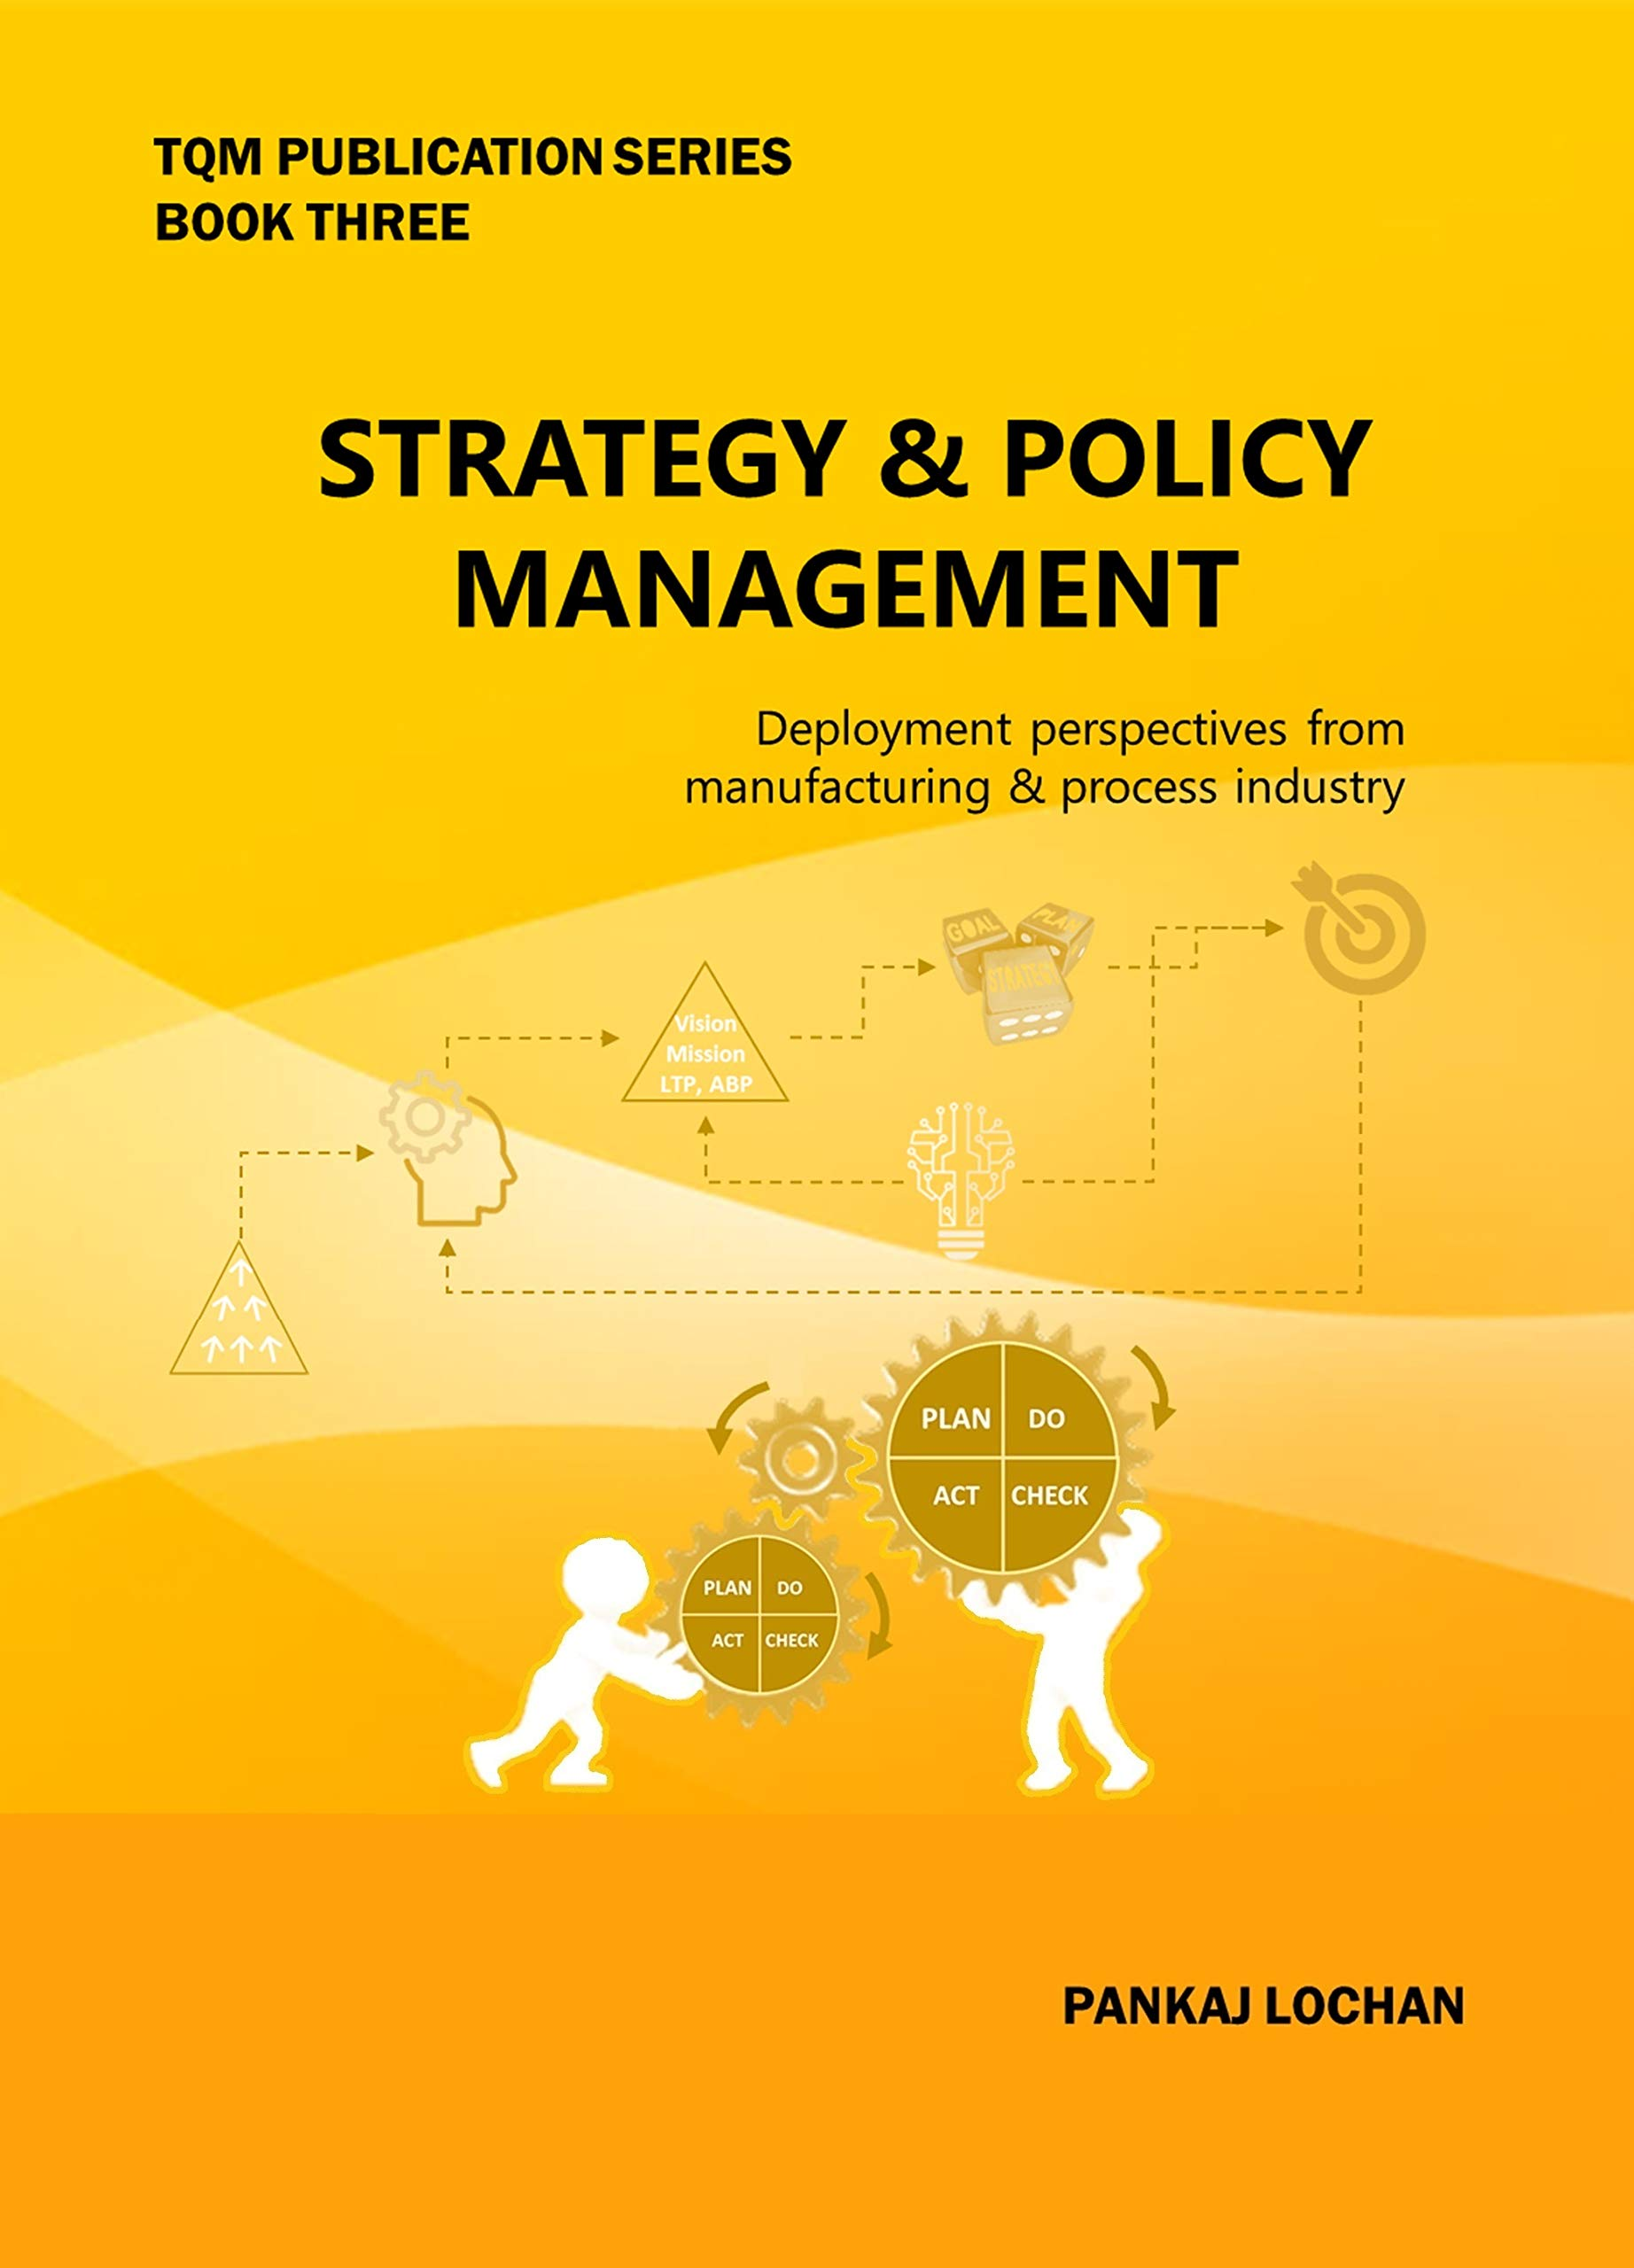 STRATEGY & POLICY MANAGEMENT (TQM Publication Series)